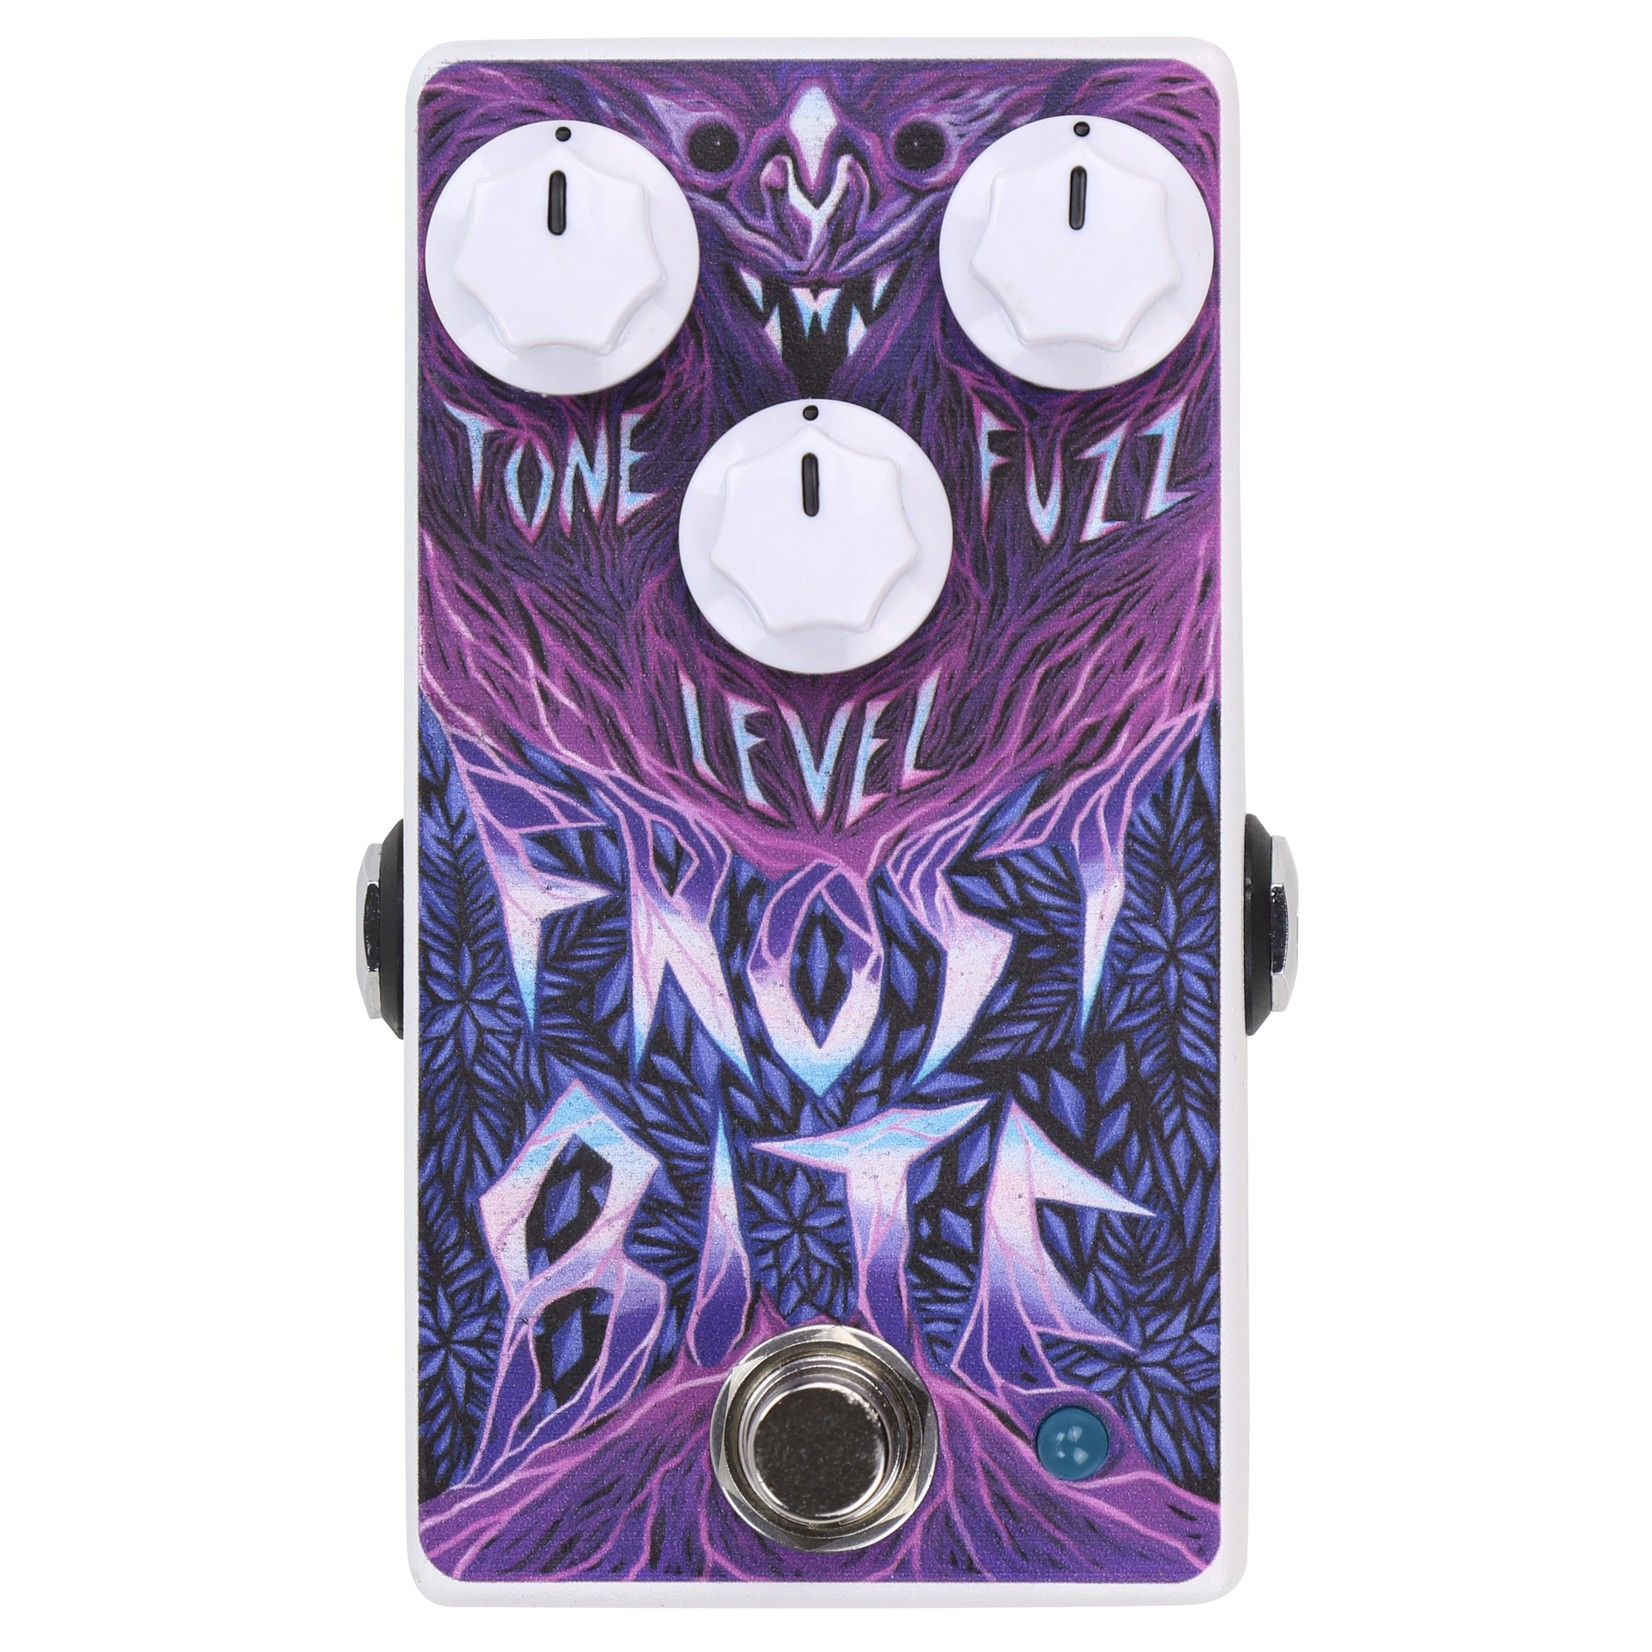 Coffin Case Coffin / Haunted Labs - Frost Bite Fuzz Limited Edition (only 250 made)